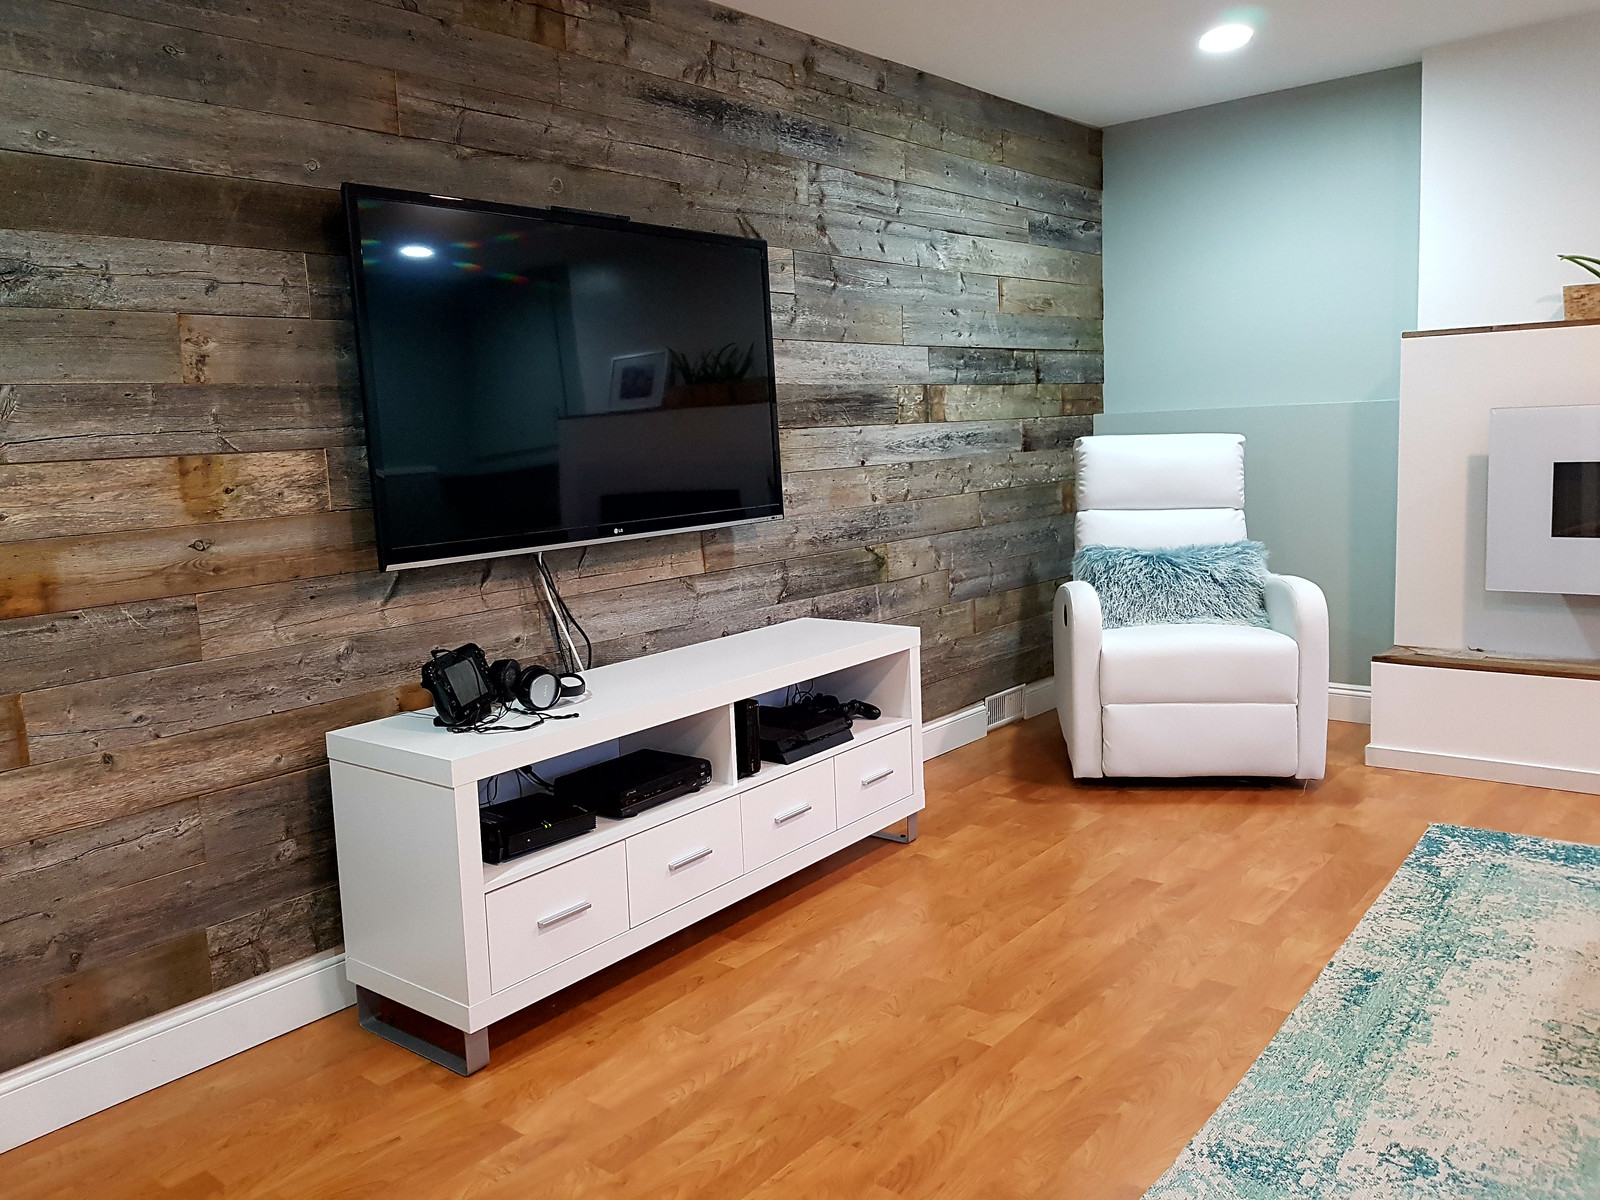 dream easy my pin house pinterest barn board bedroom walls interior the be could for